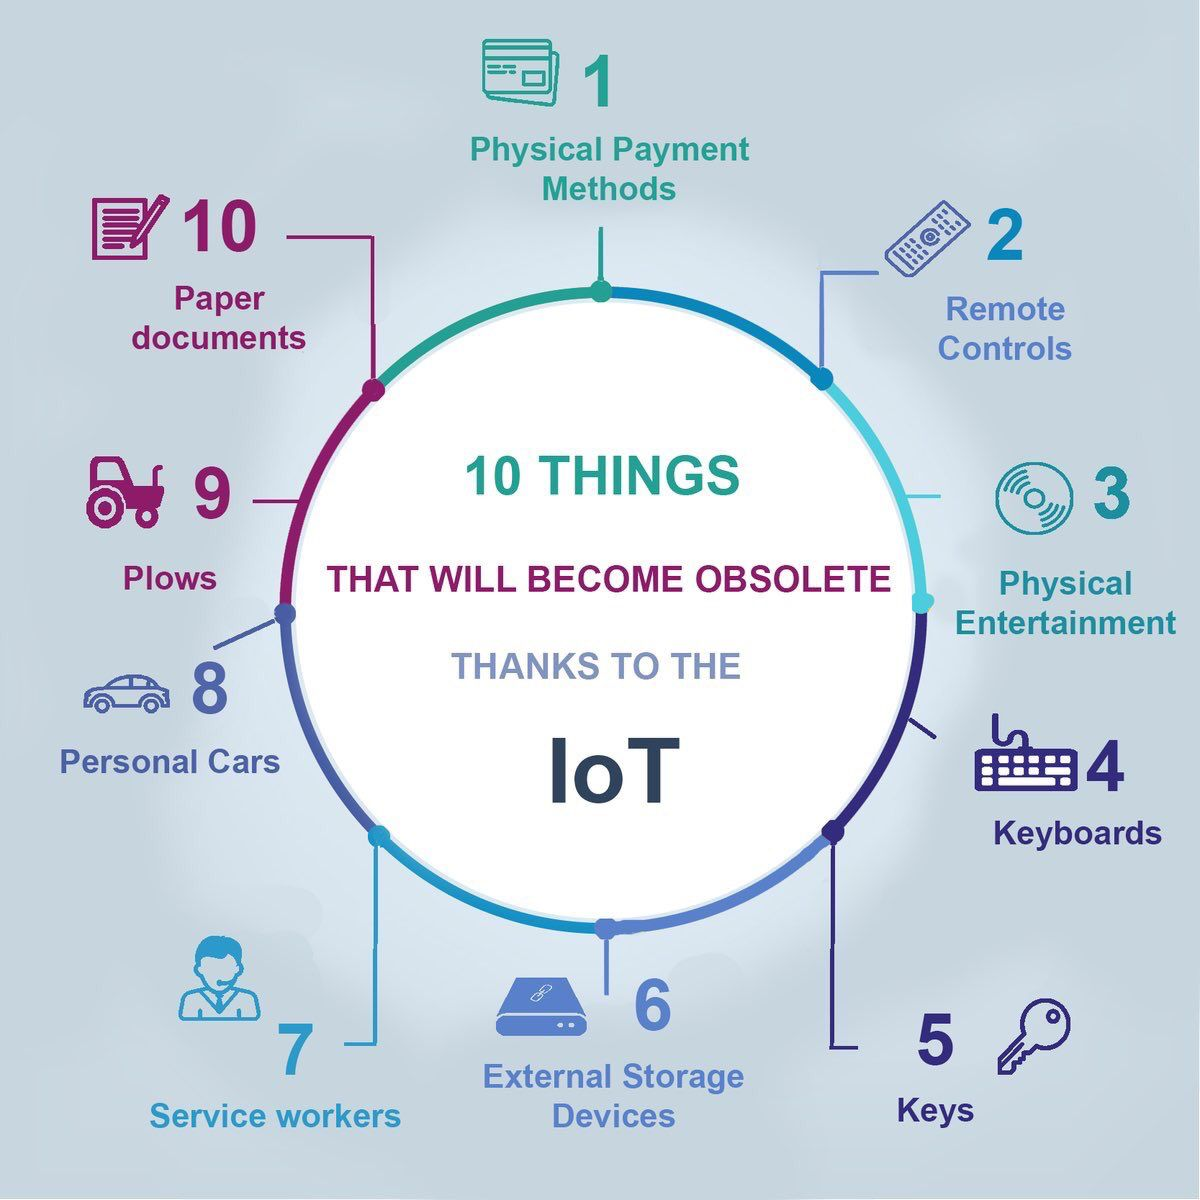 10 things will become obsolete. Thanks to #IoT.  #CyberSecurity #blockchain #MachineLearning #fintech #BigData #AI #CX @Fisher85M<br>http://pic.twitter.com/8bXMMTwBpR